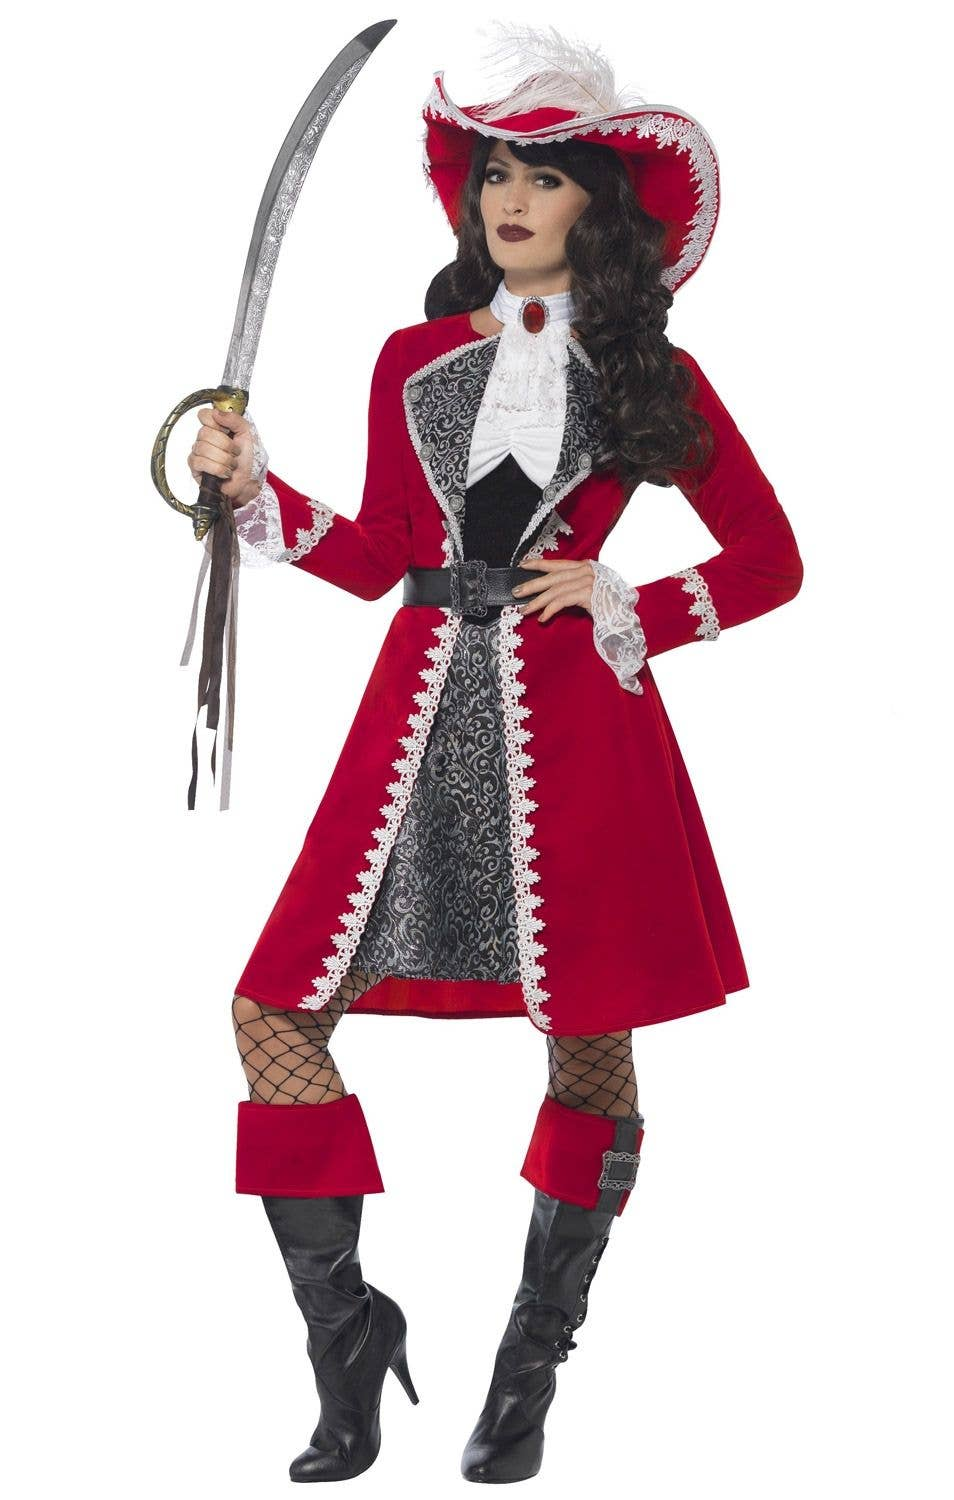 Sexy Pirate Captain Lady Deluxe Womenu0027s Costume Main Image  sc 1 st  Heaven Costumes & Pirate Lady Captain Costume | Authentic Womenu0027s Pirate Lady Costume